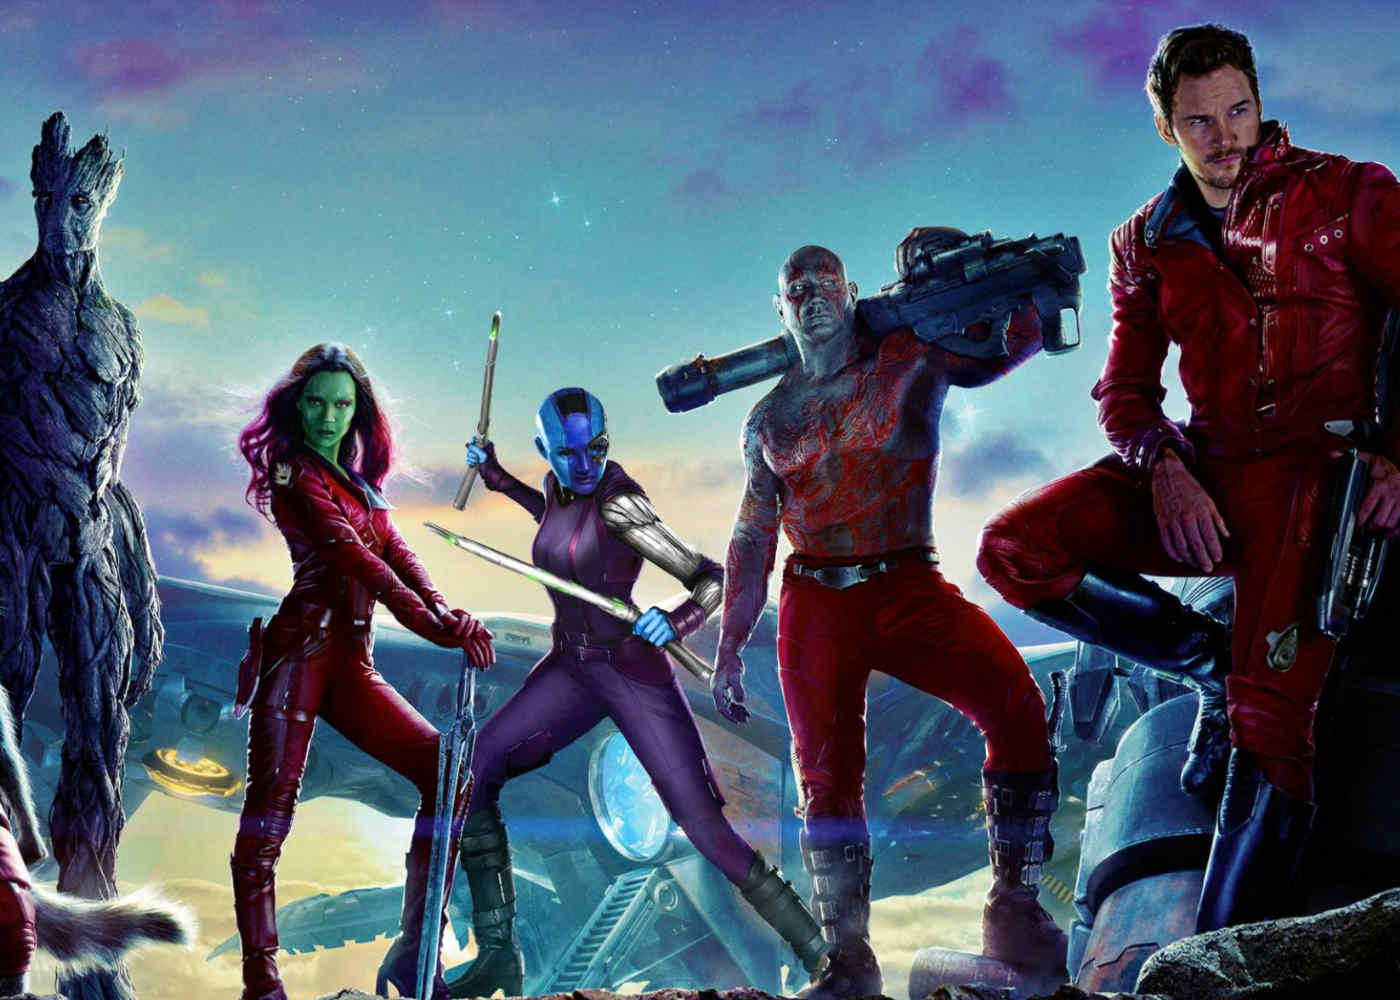 Guardians of the Galaxy was Supposed to Feature Death of a Key Character